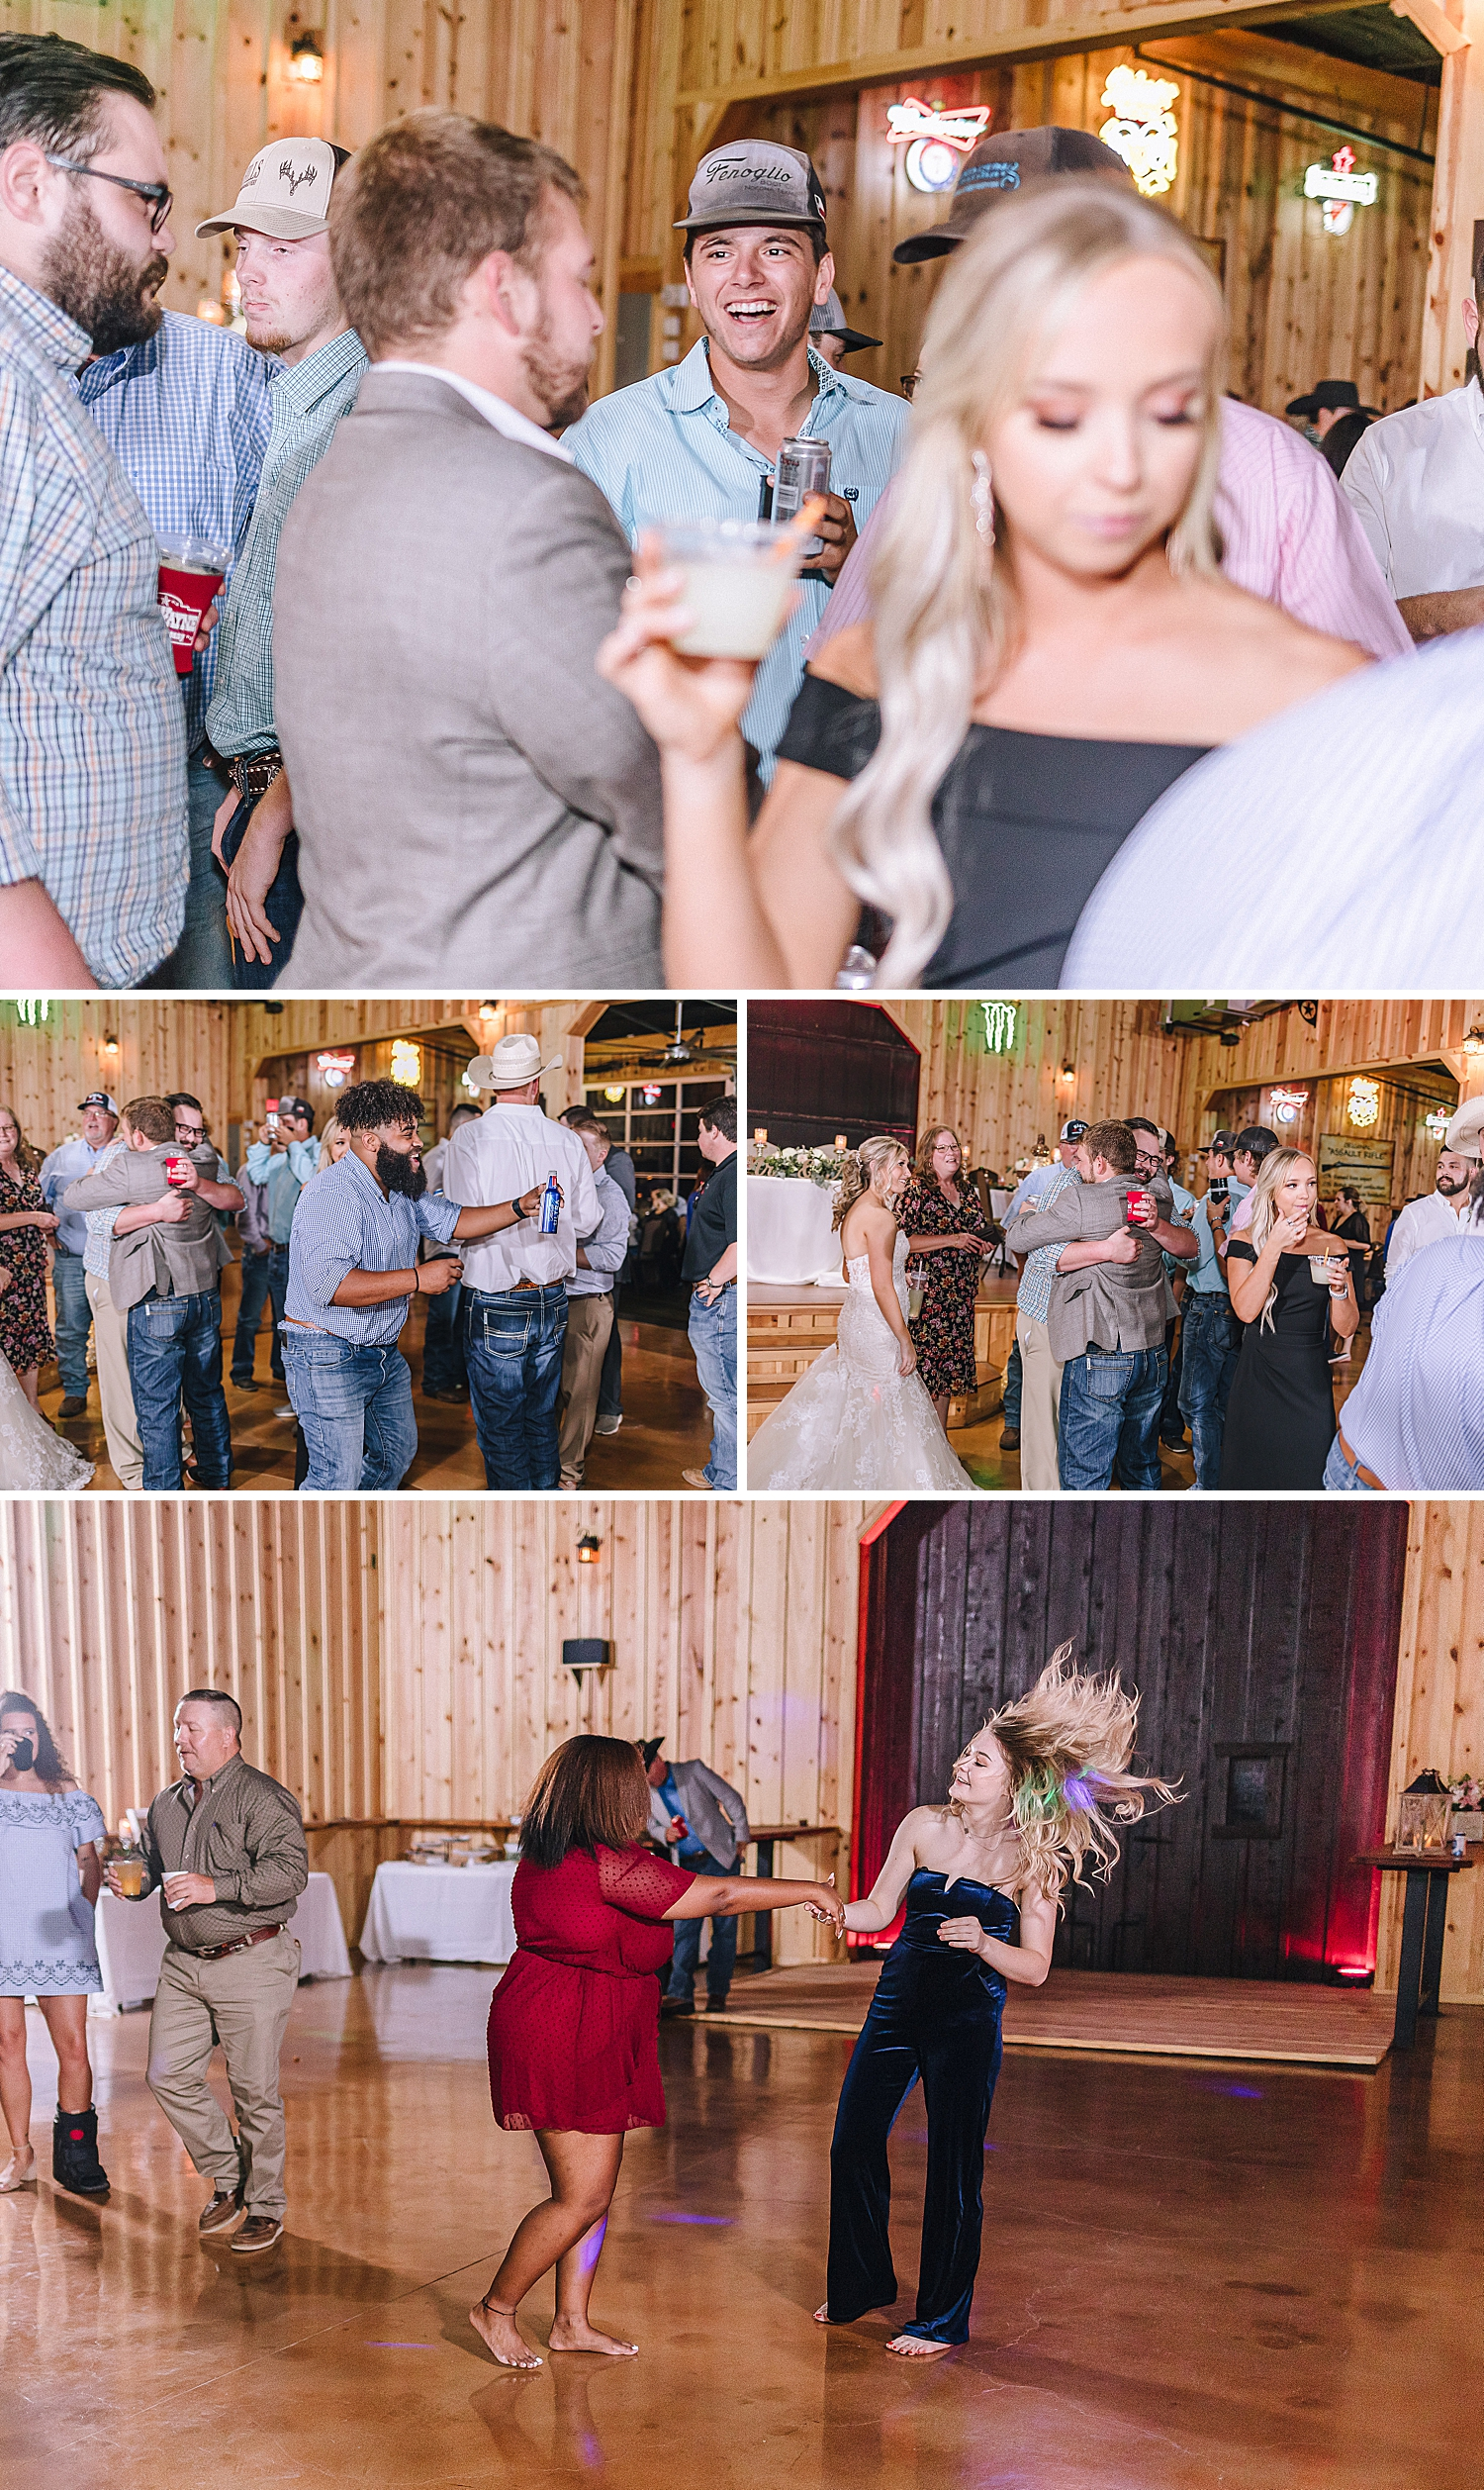 Rackler-Ranch-LaVernia-Texas-Wedding-Carly-Barton-Photography_0142.jpg